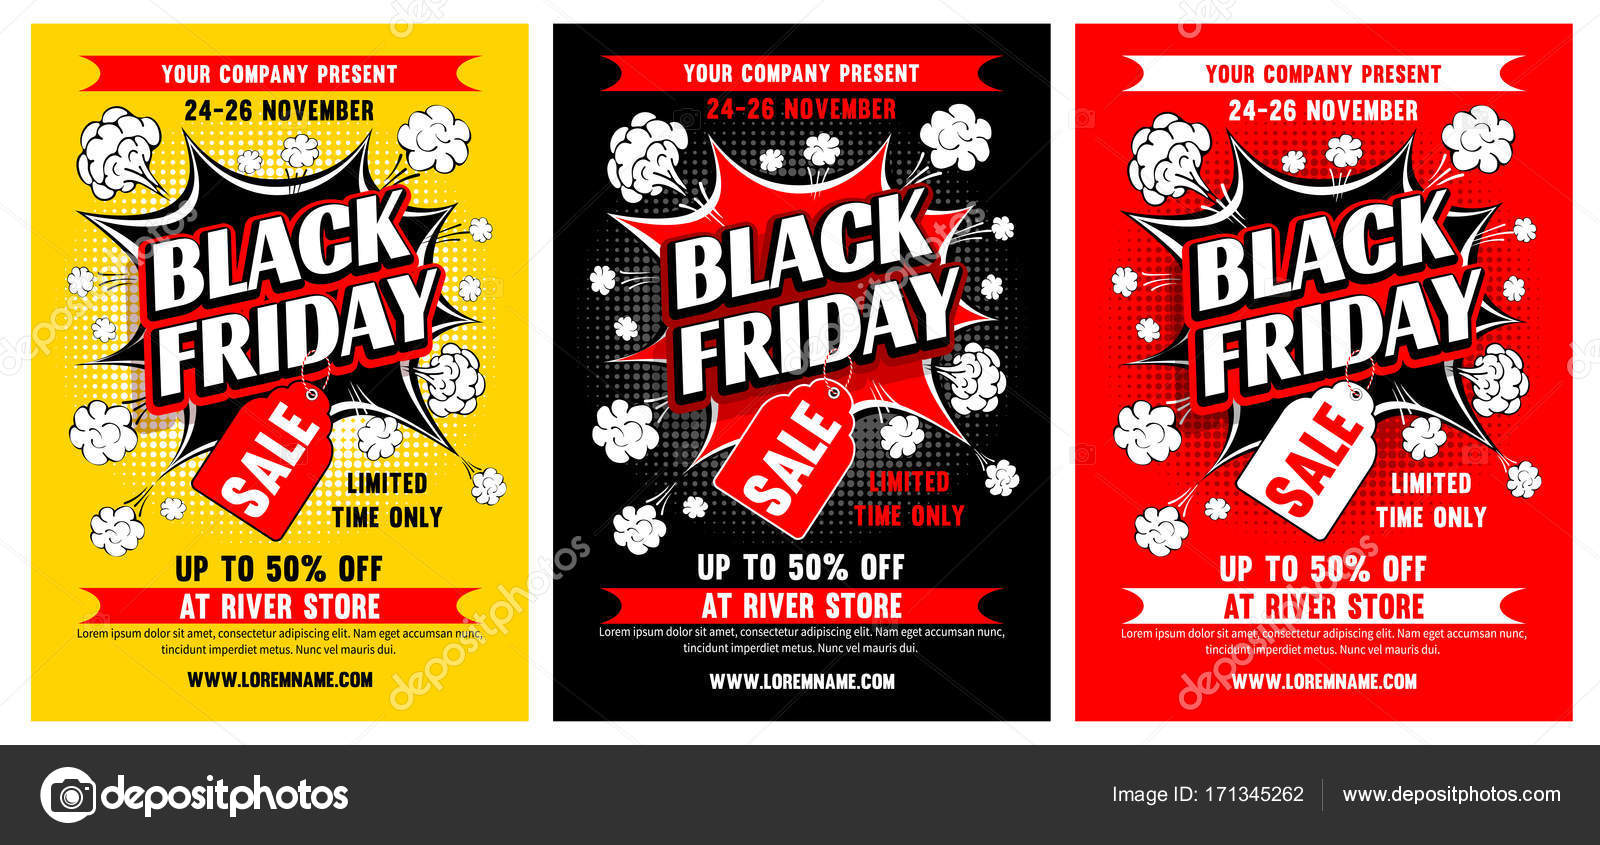 Black friday sale poster template \u2014 Stock Vector © Pazhyna #171345262 - for sale poster template